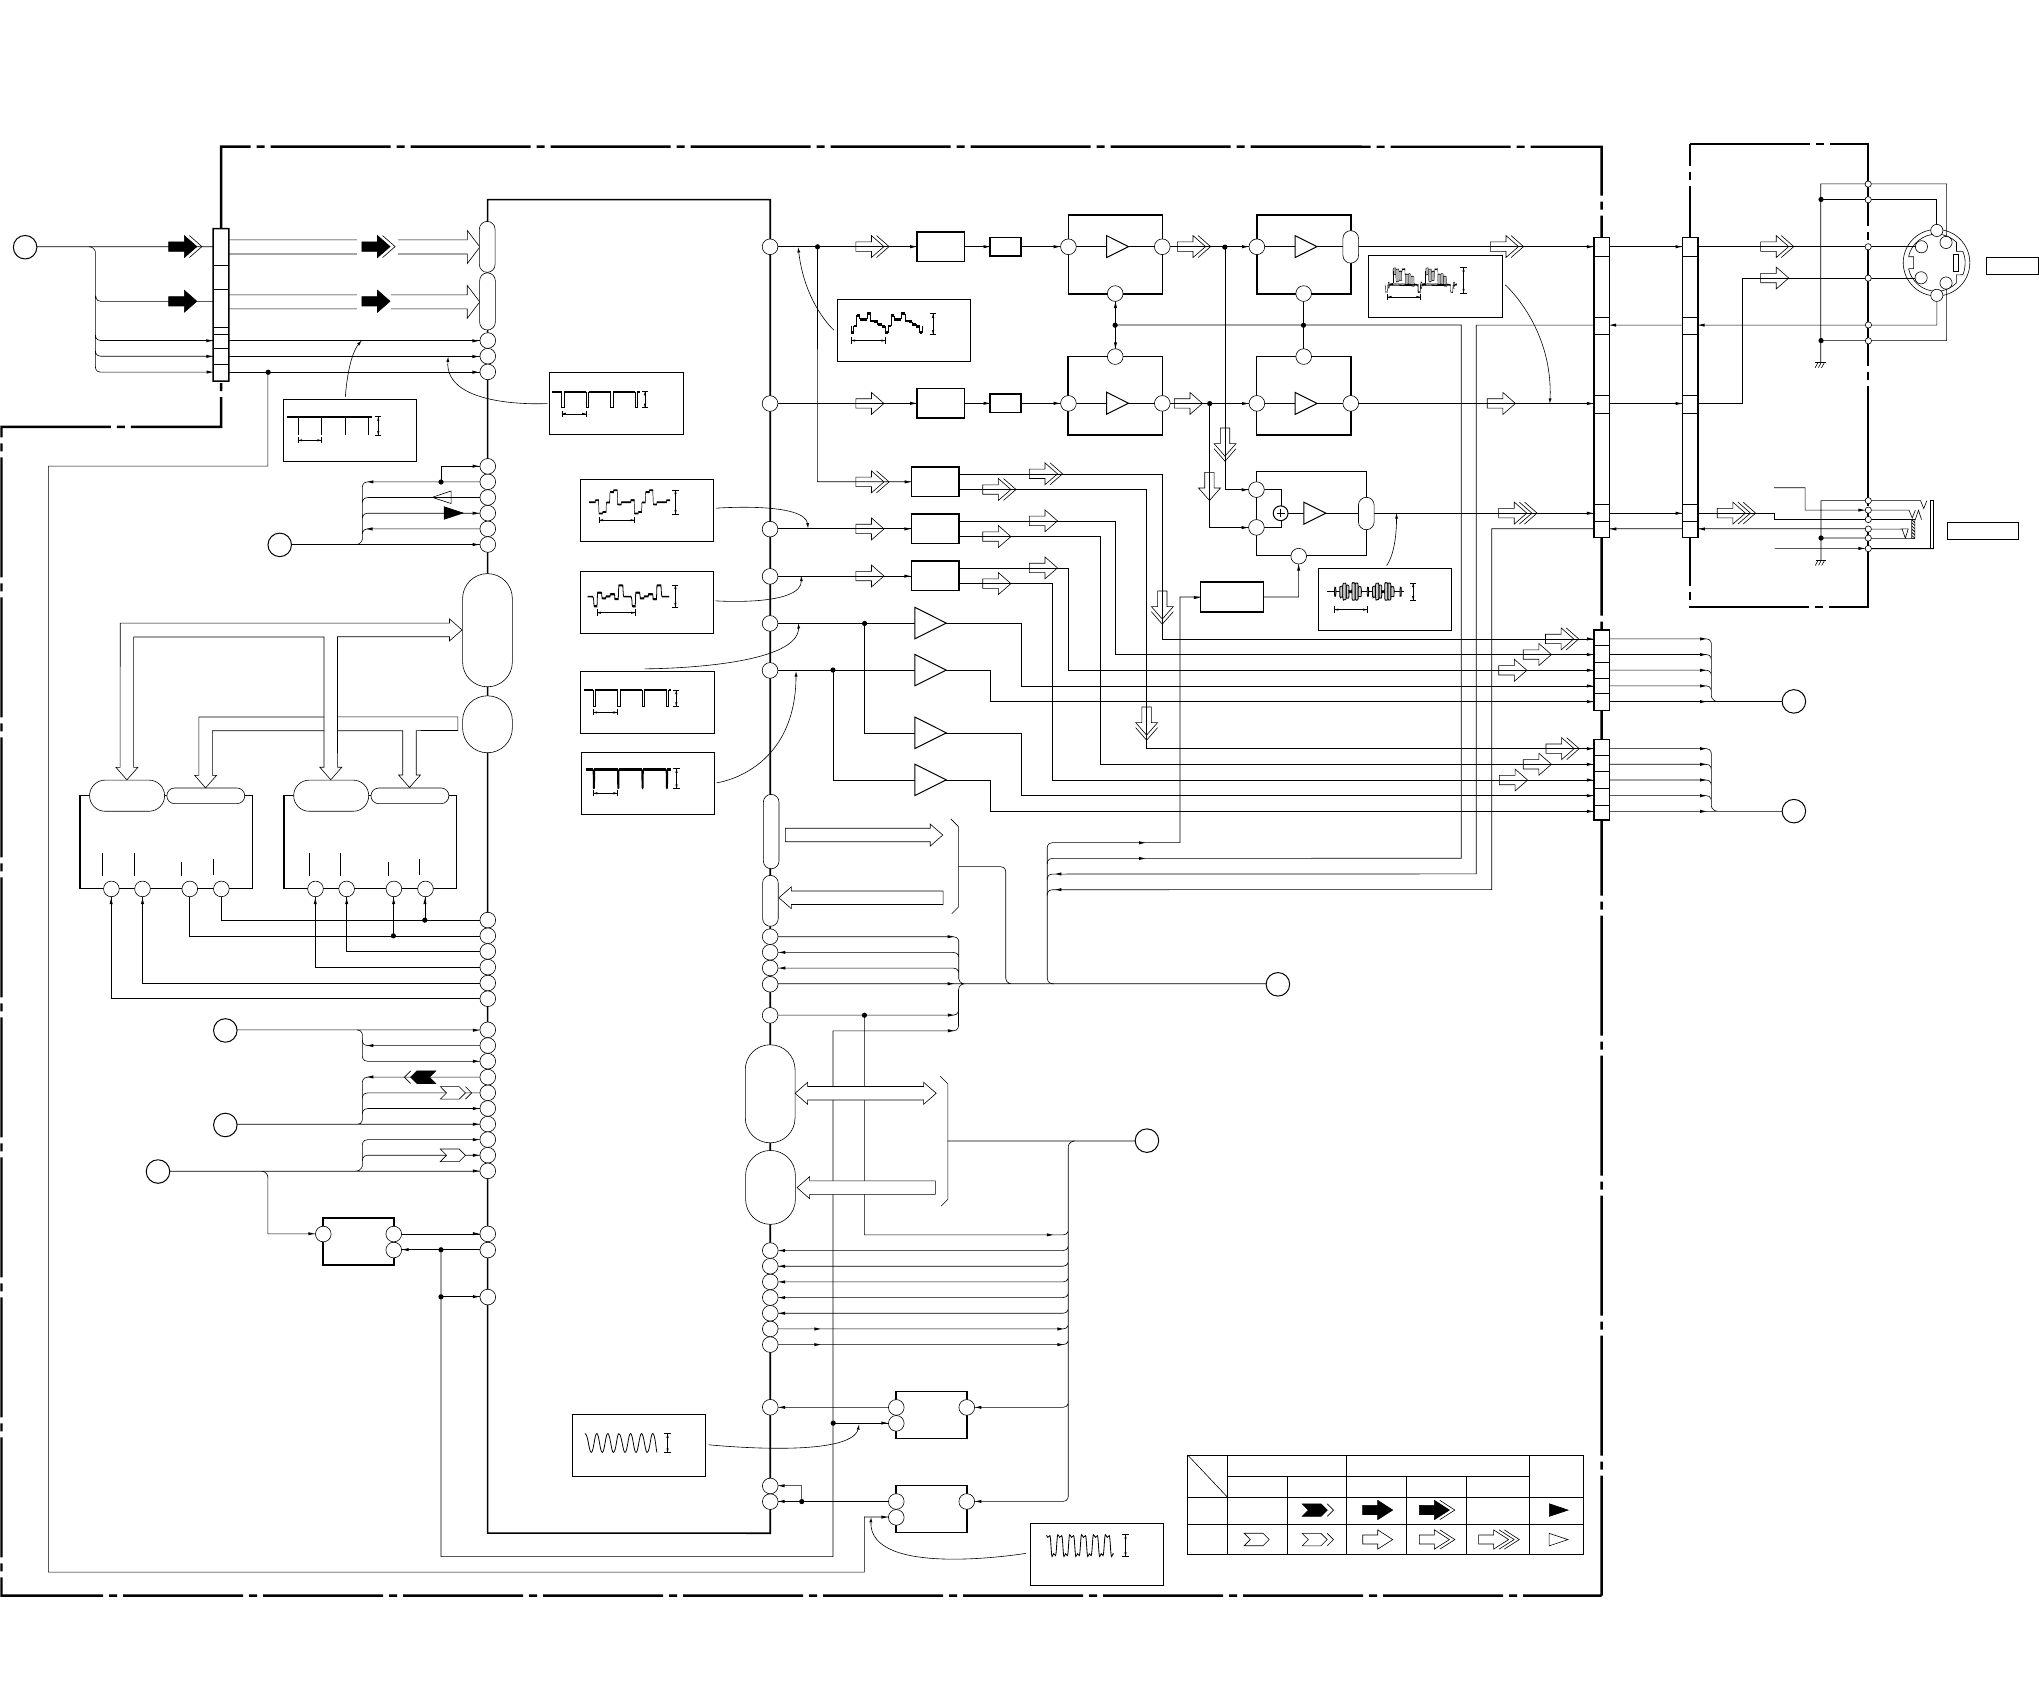 DCM M1 Sony_dcmm1_service_manual Sony Dcmm1 Service Manual On Diagram Q Wiring Ic on